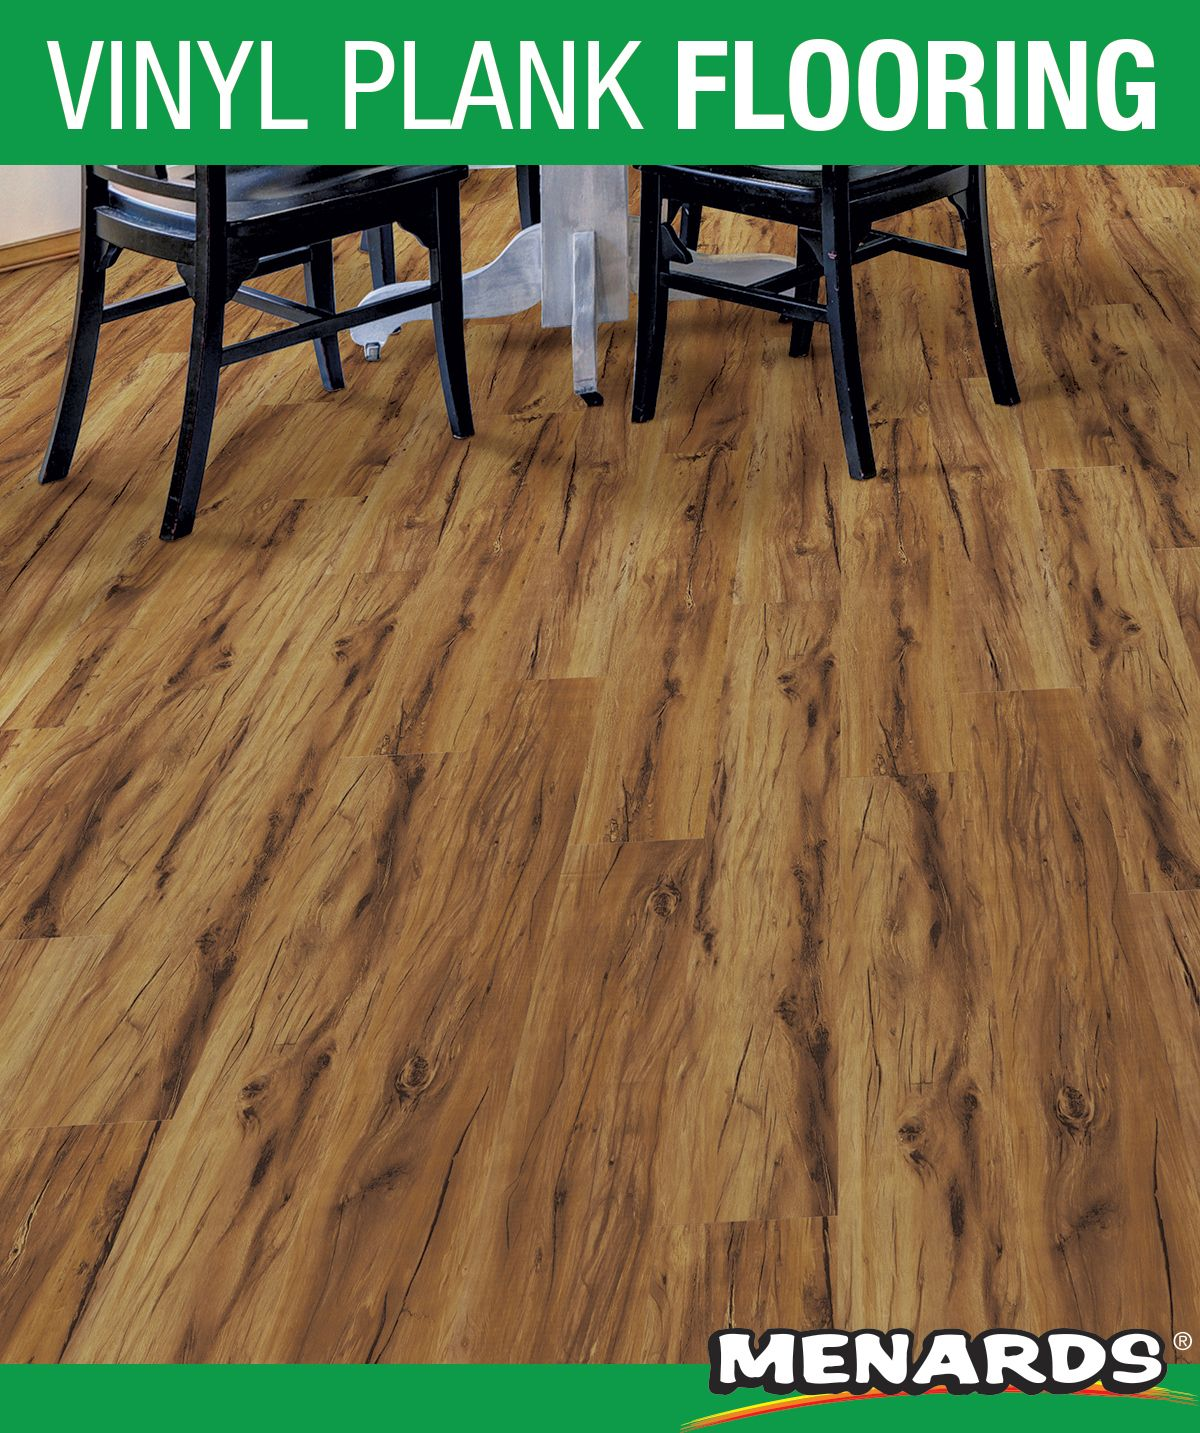 Get new floors the simple way with Styleline selfadhesive